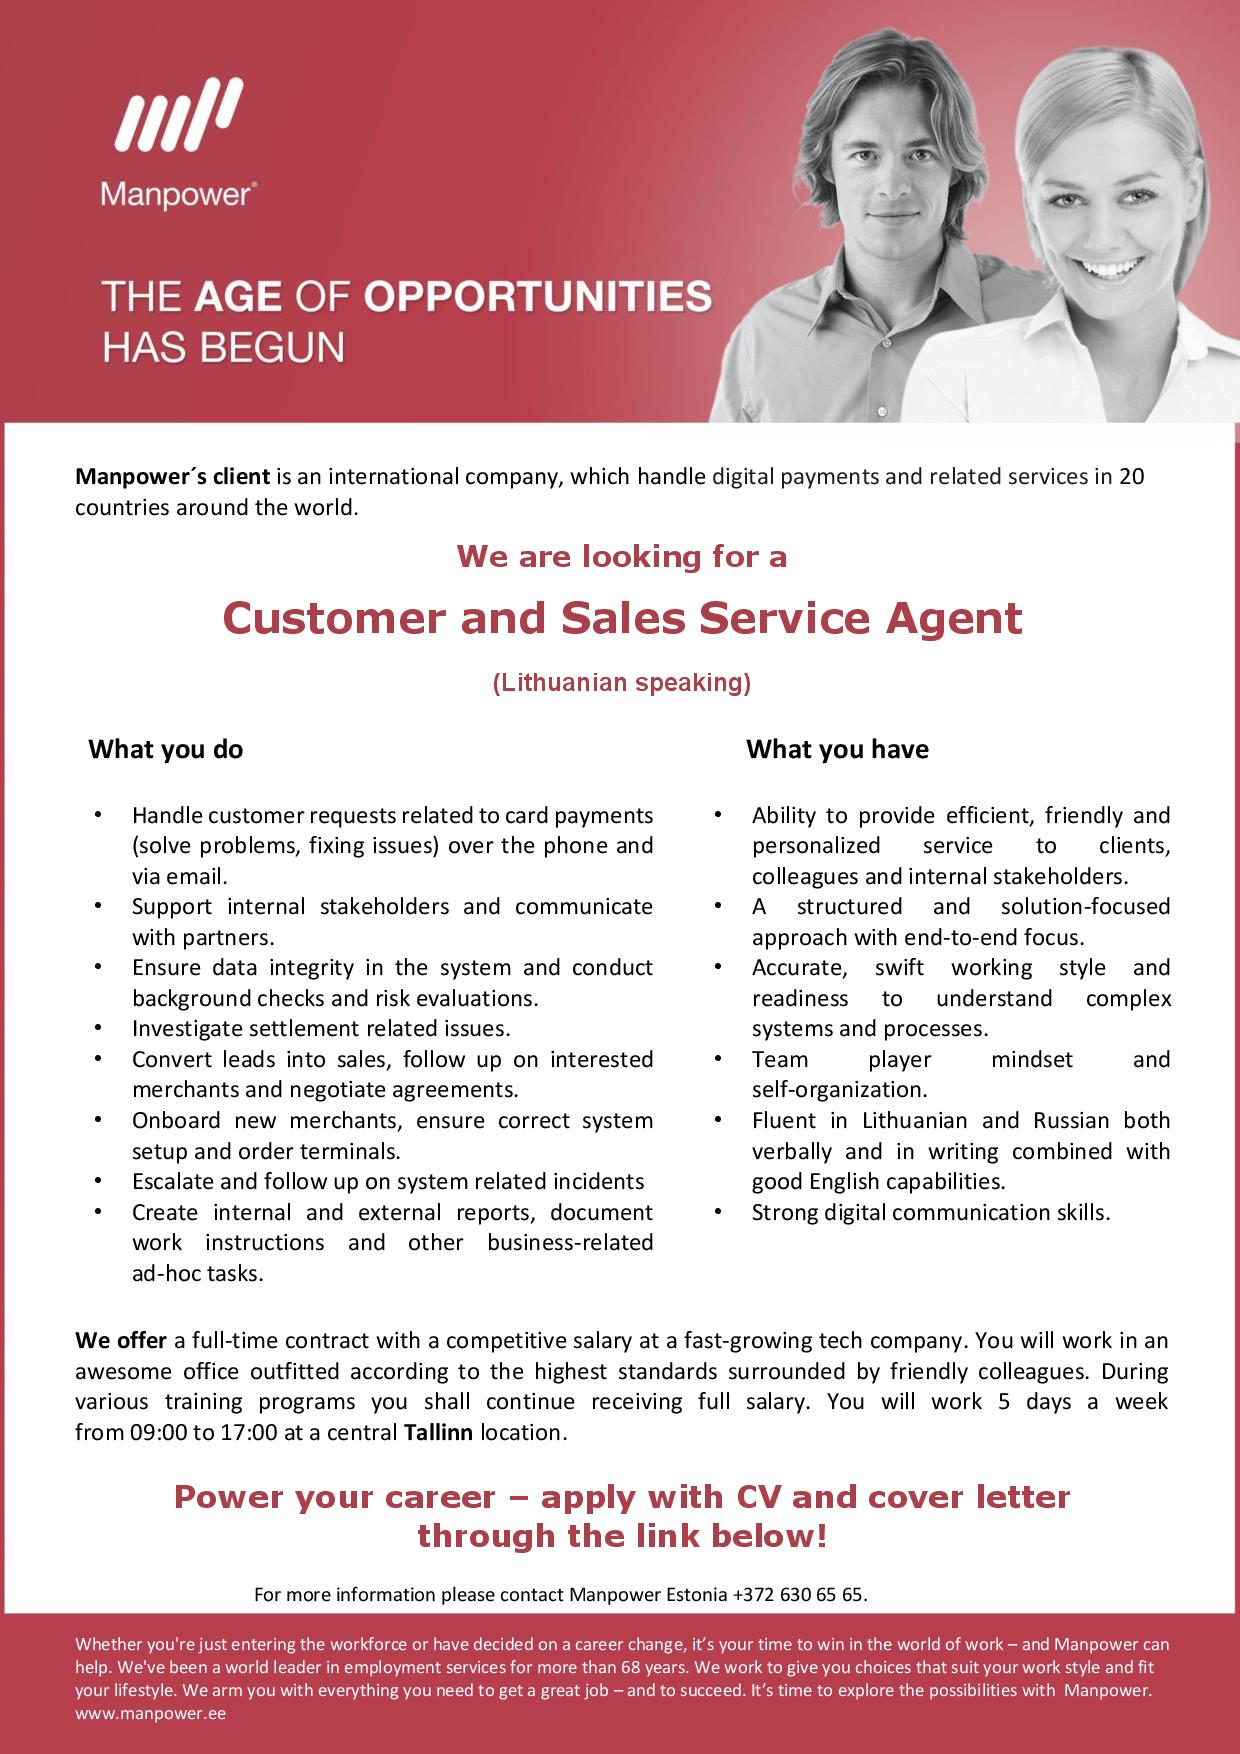 CUSTOMER AND SALES SERVICE AGENT (LITHUANIAN SPEAKING)